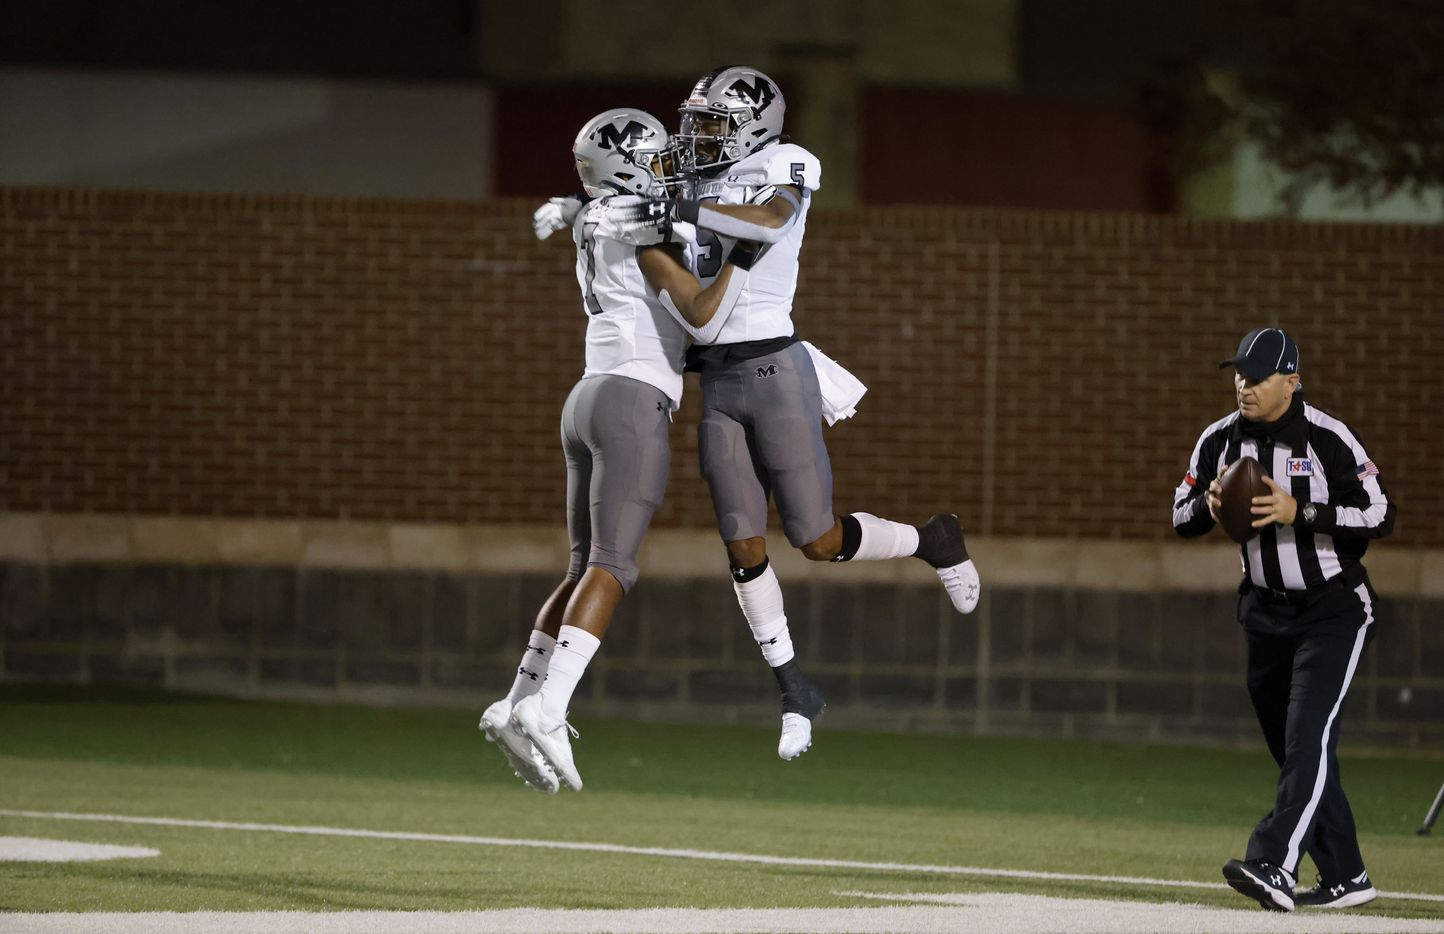 Arlington Martin's Lenard Lemons (5) celebrates his touchdown with Kryon Askey (7), right, against Lewisville during Class 6A Division I area-round playoff hight school football game on Dec. 17, 2020. (Michael Ainsworth/Special Contributor)